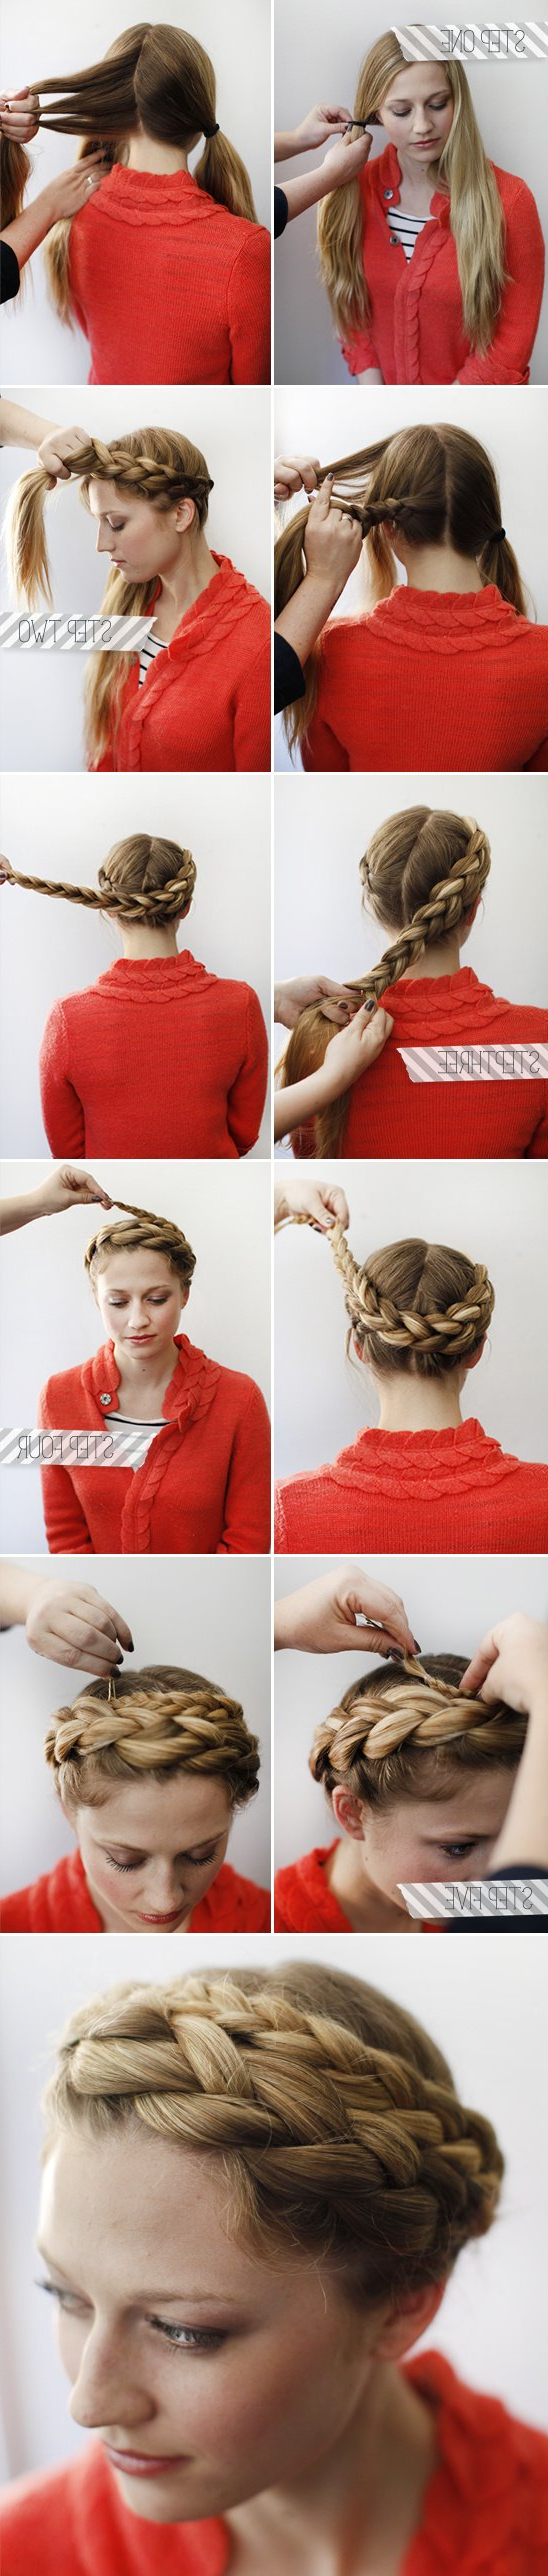 19 Bridal Hairstyle Tutorials For Savvy Brides – Wild About Beauty With Regard To Most Current Criss Cross Wedding Hairstyles (View 18 of 20)